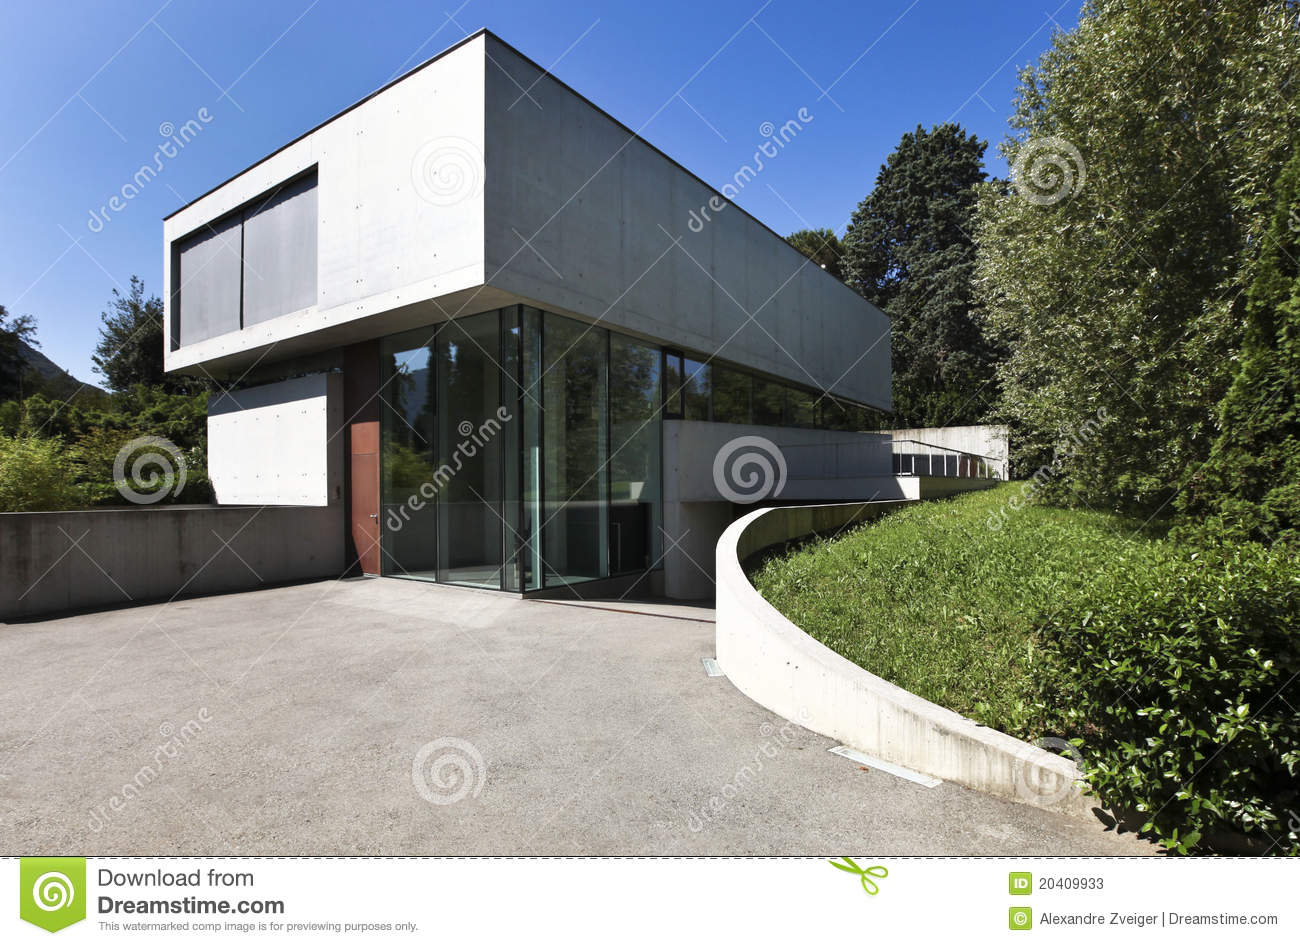 Belle maison moderne l 39 ext rieur photos stock image for Exterieur maison moderne